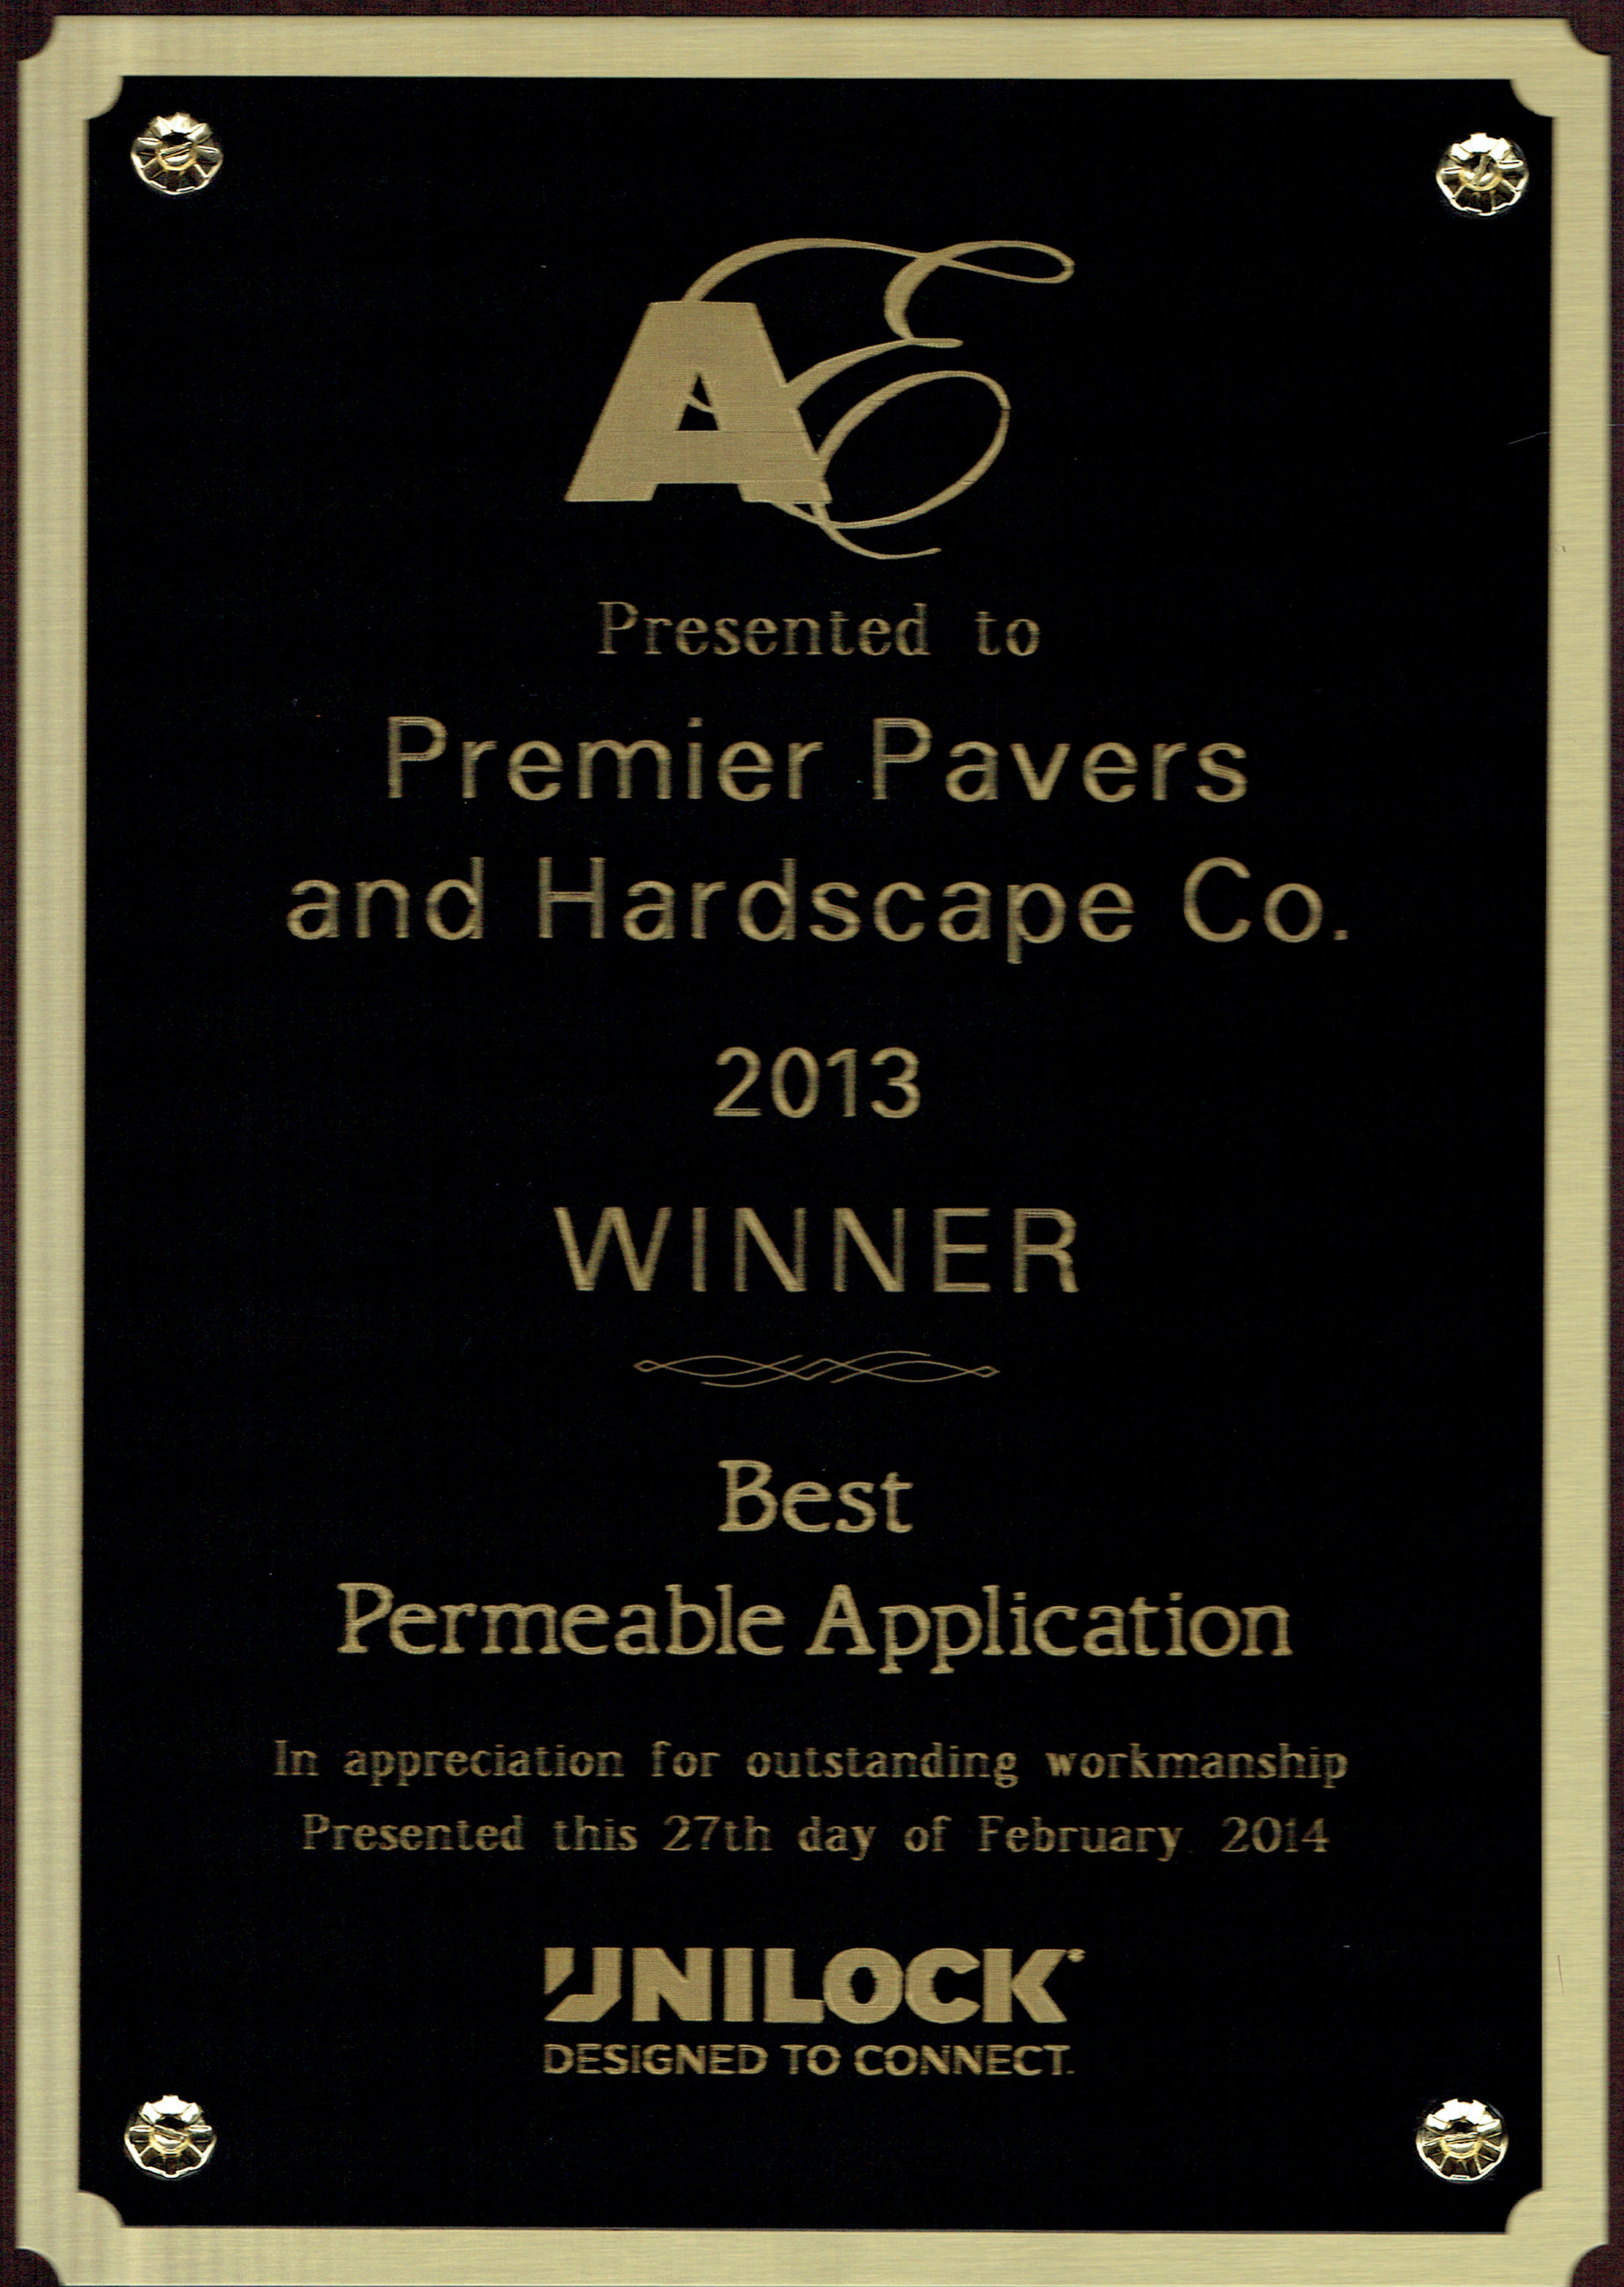 Eastern Massachusetts landscaping company with Unilock award for best permeable application in Newton MA